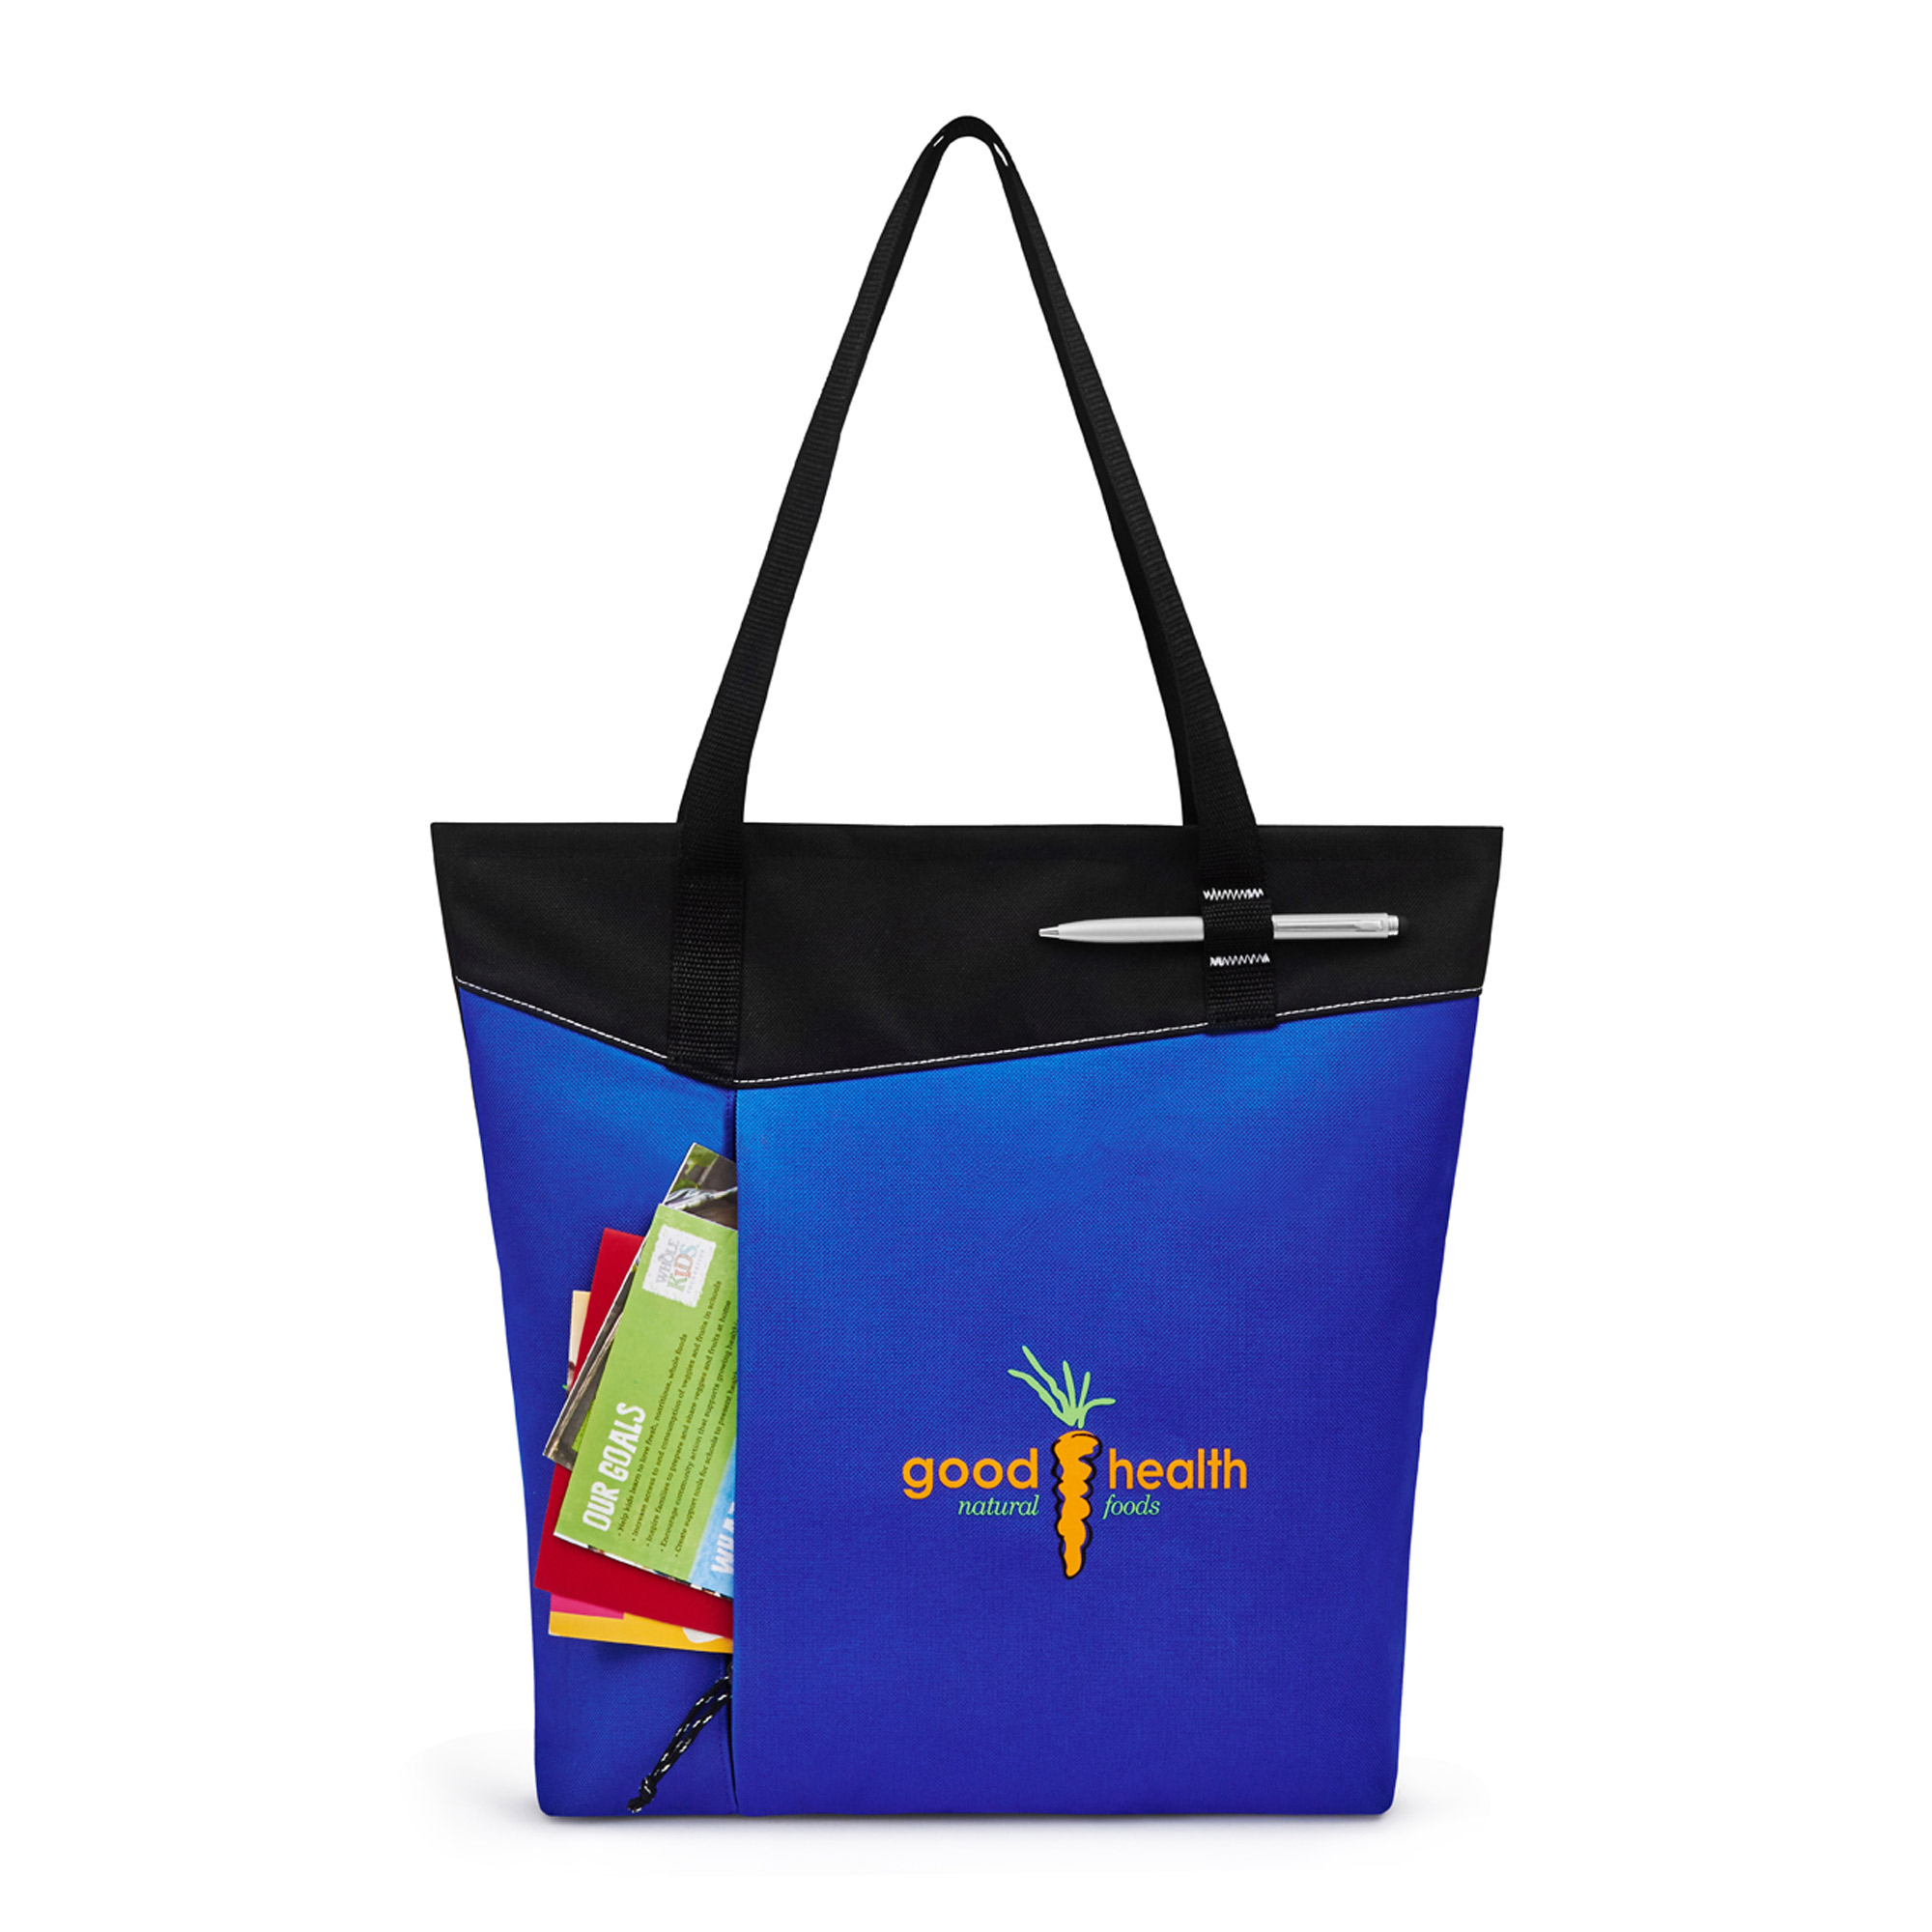 Venue Convention Tote Bag - Progress Promotional Products 4792843dc350a